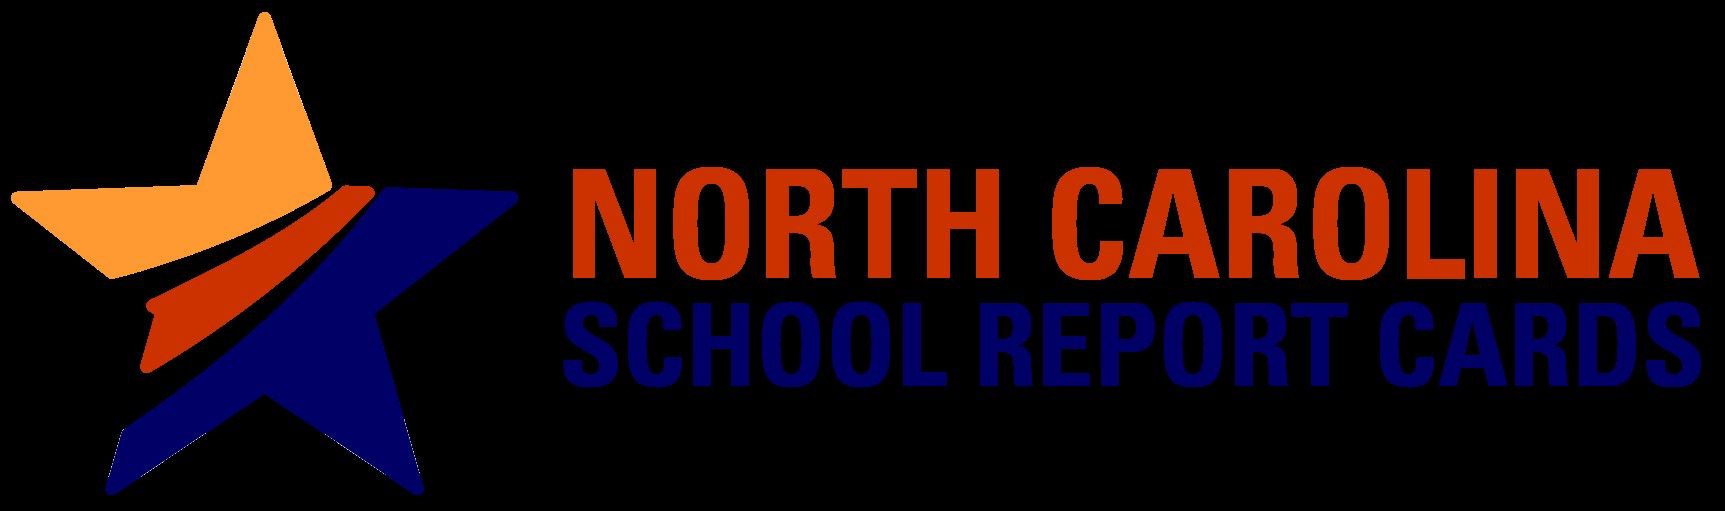 NC Report Cards logo